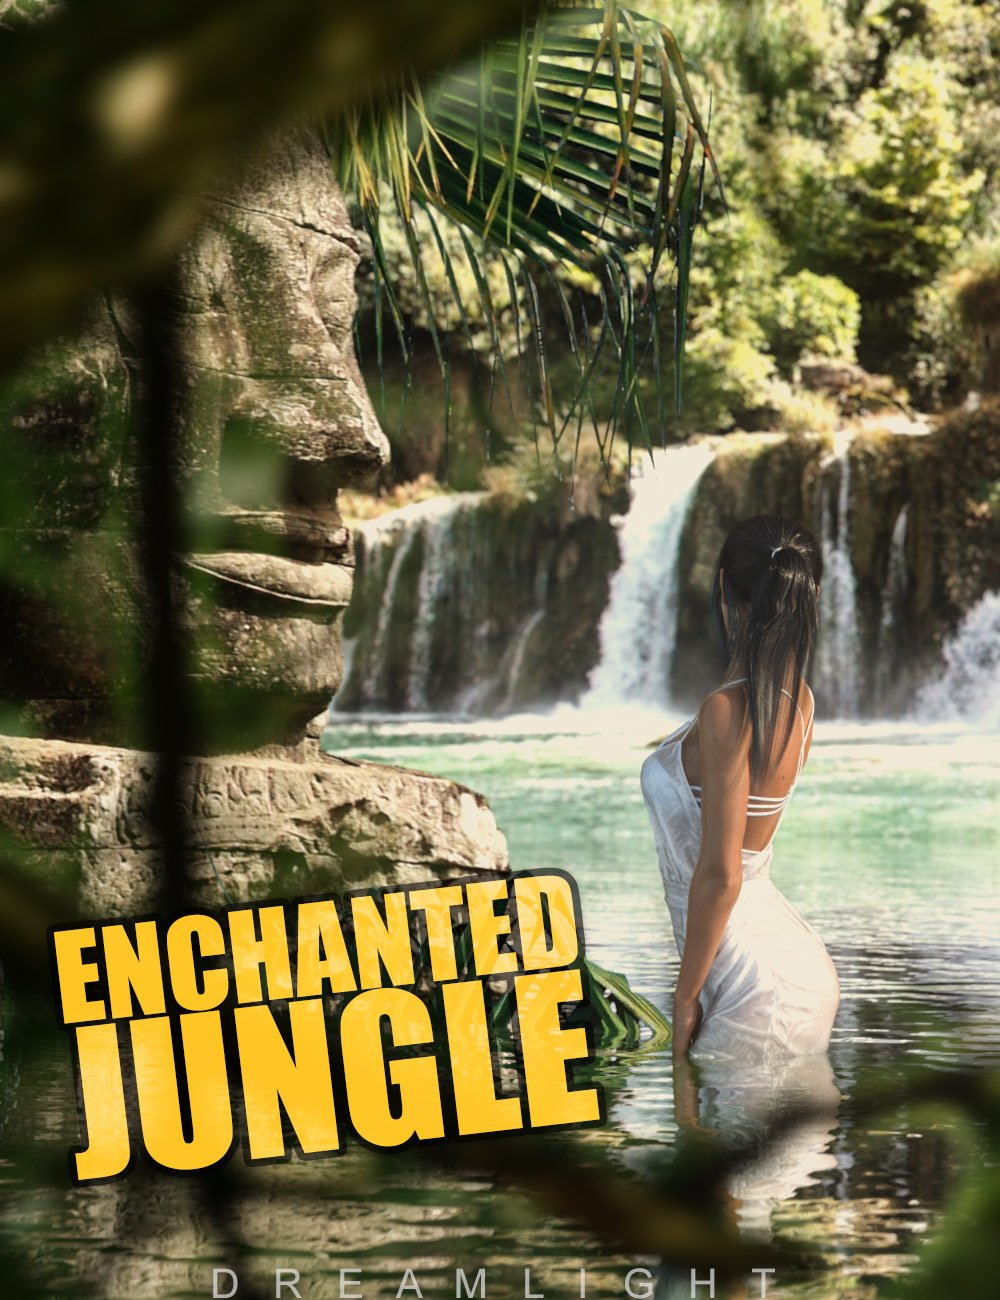 Enchanted Jungle Backgrounds by: Dreamlight, 3D Models by Daz 3D